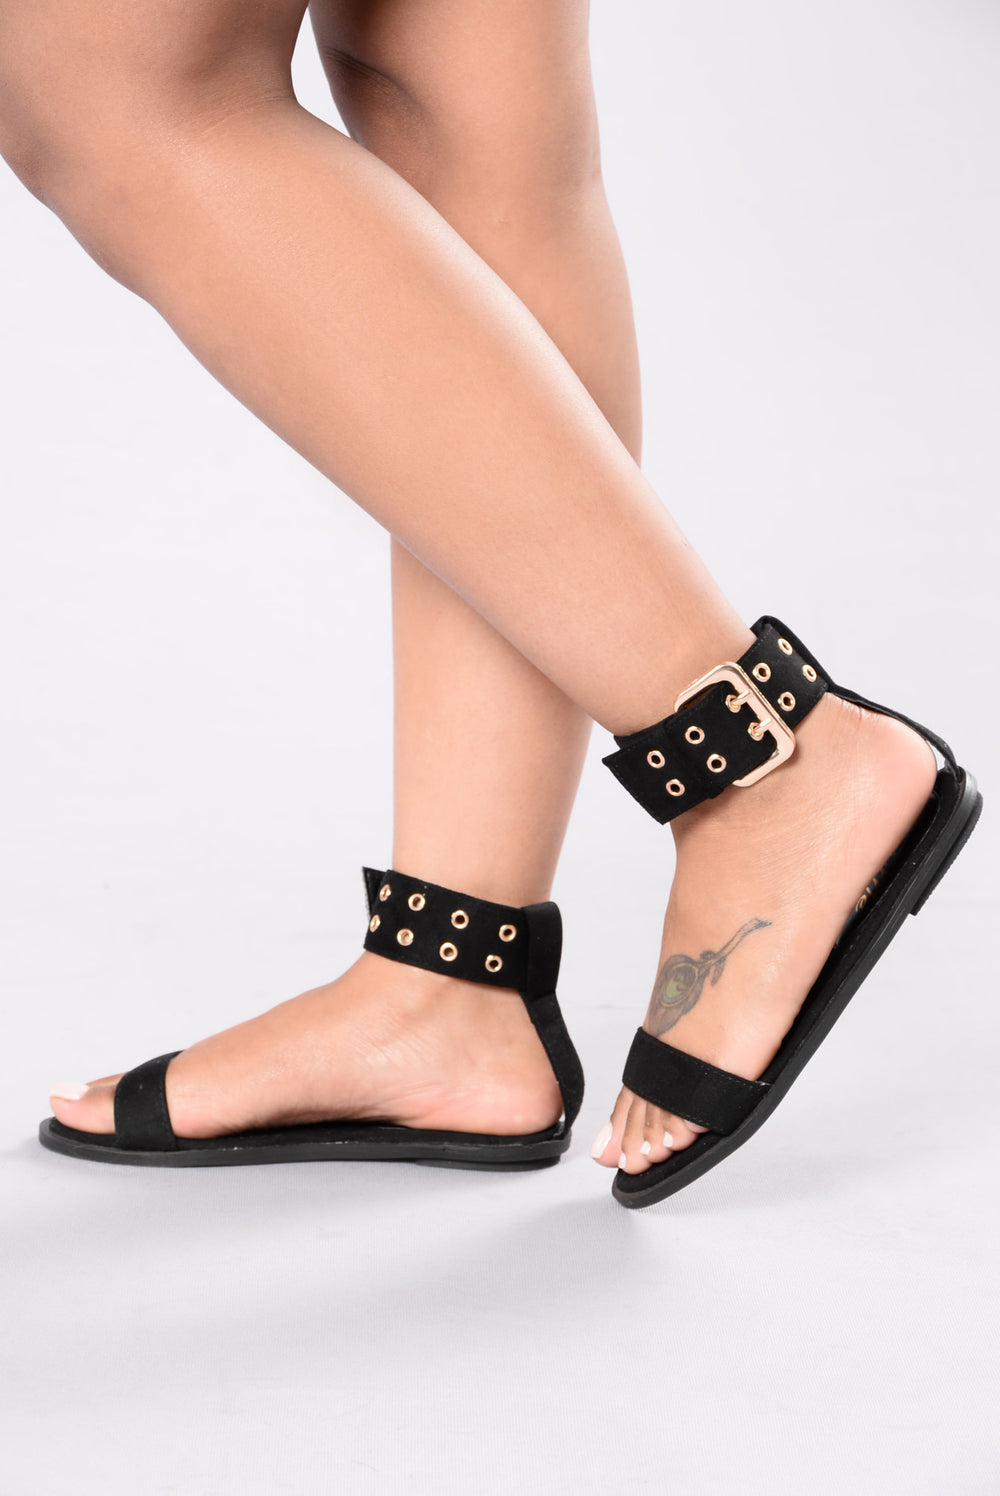 Follow Me Tonight Sandal - Black